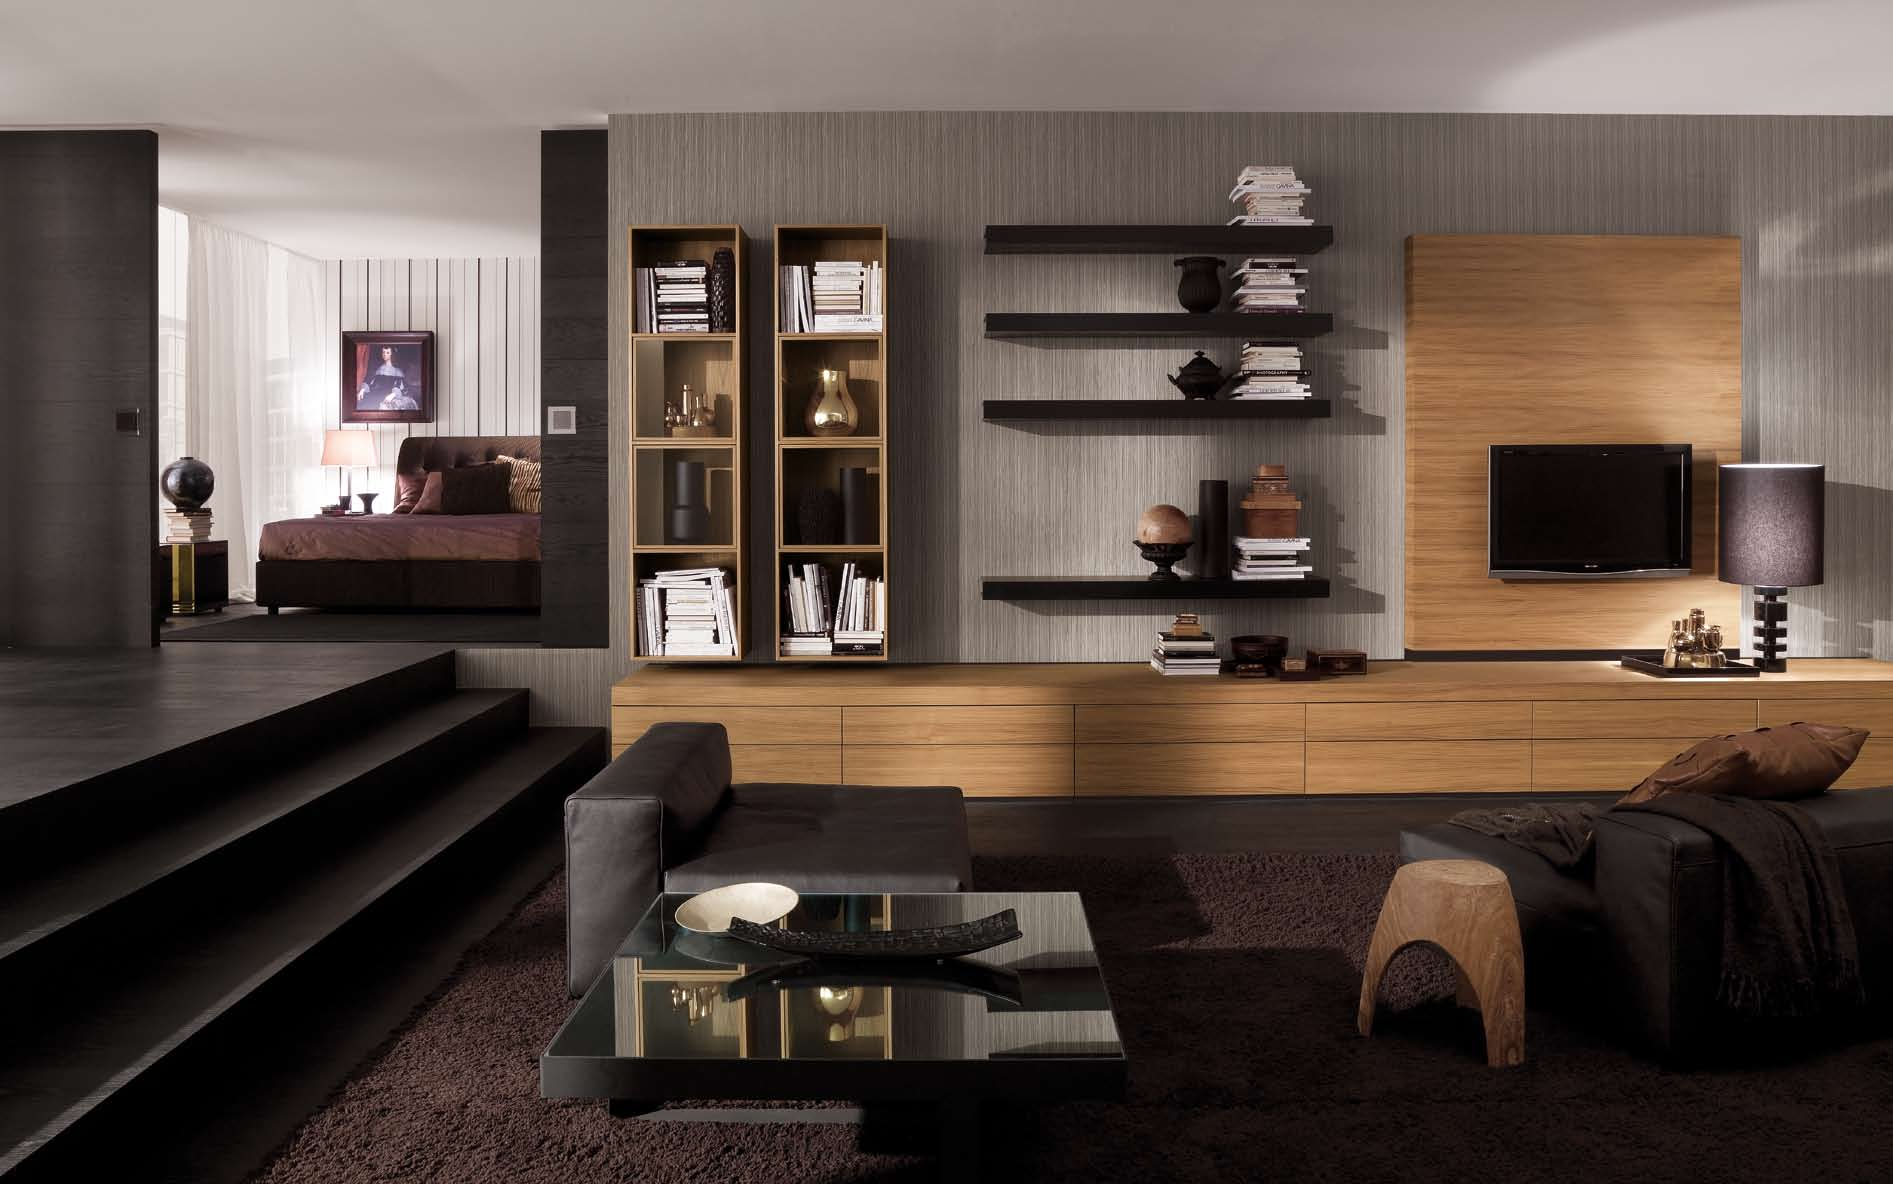 luxurious and splendid shelves for living room decorations.  Interior Exterior Plan A living room of ecstacy